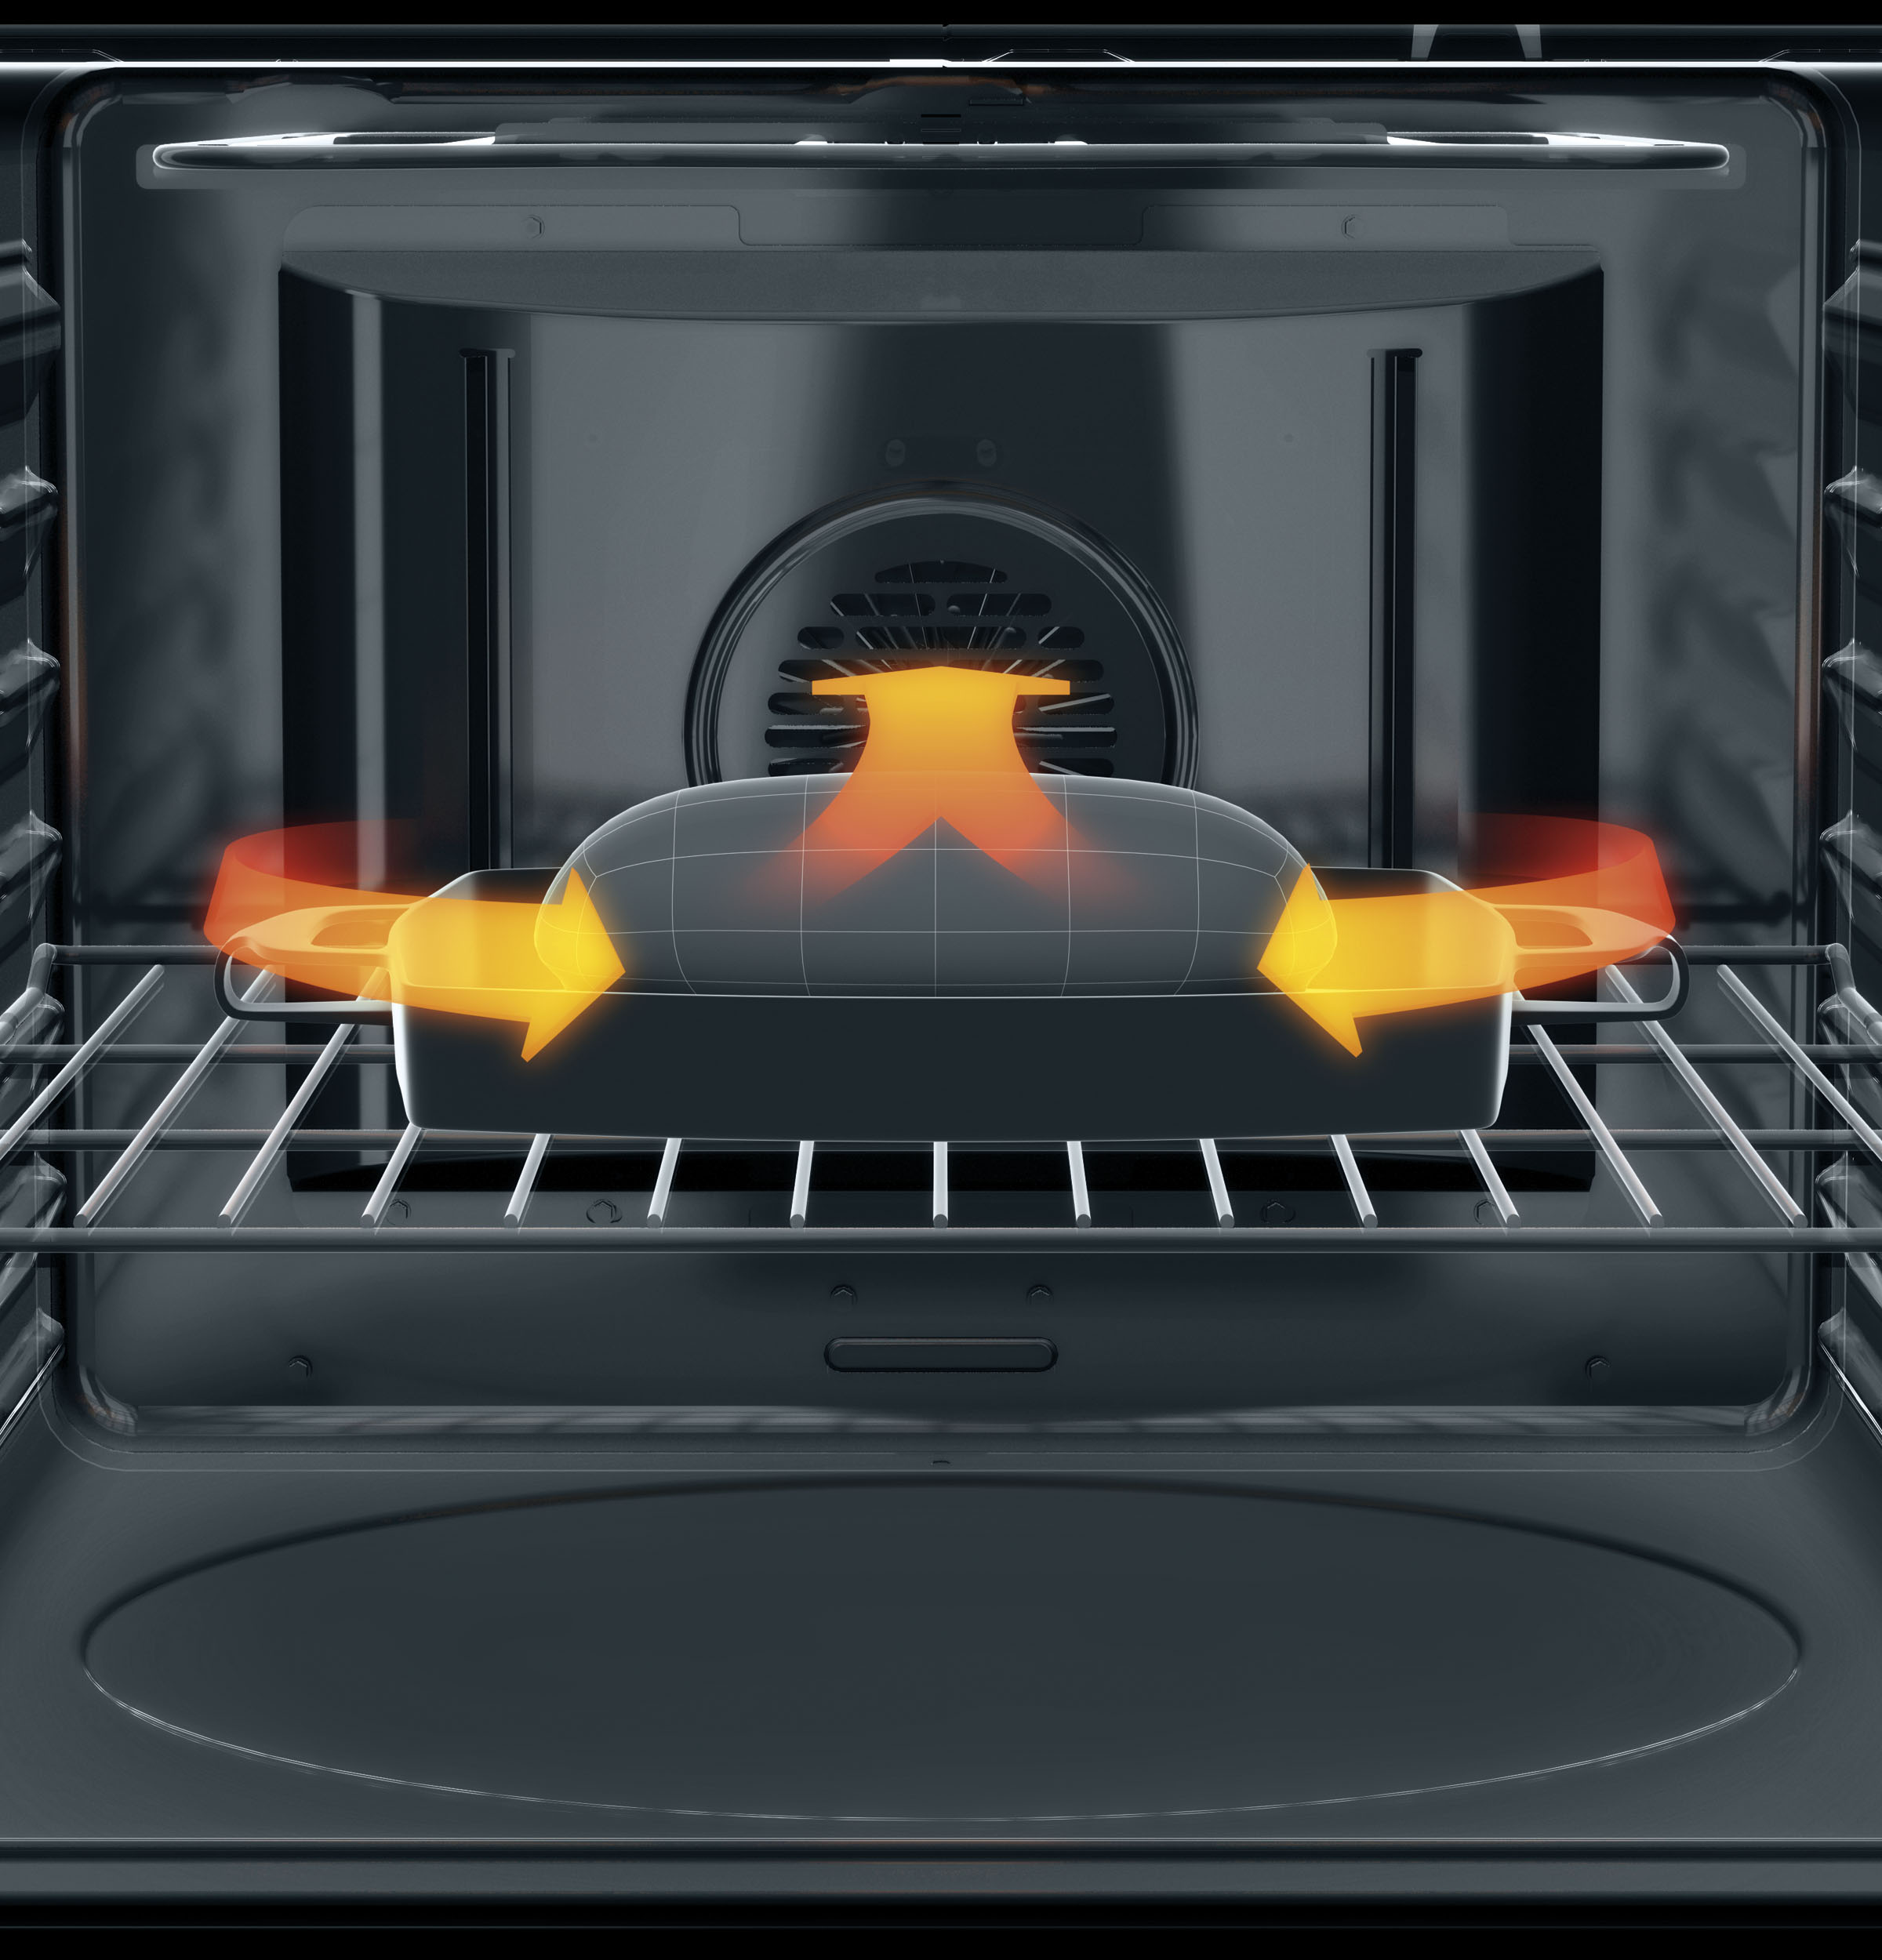 GE 5.3 cu. ft. Electric Range w/ True Convection - Black